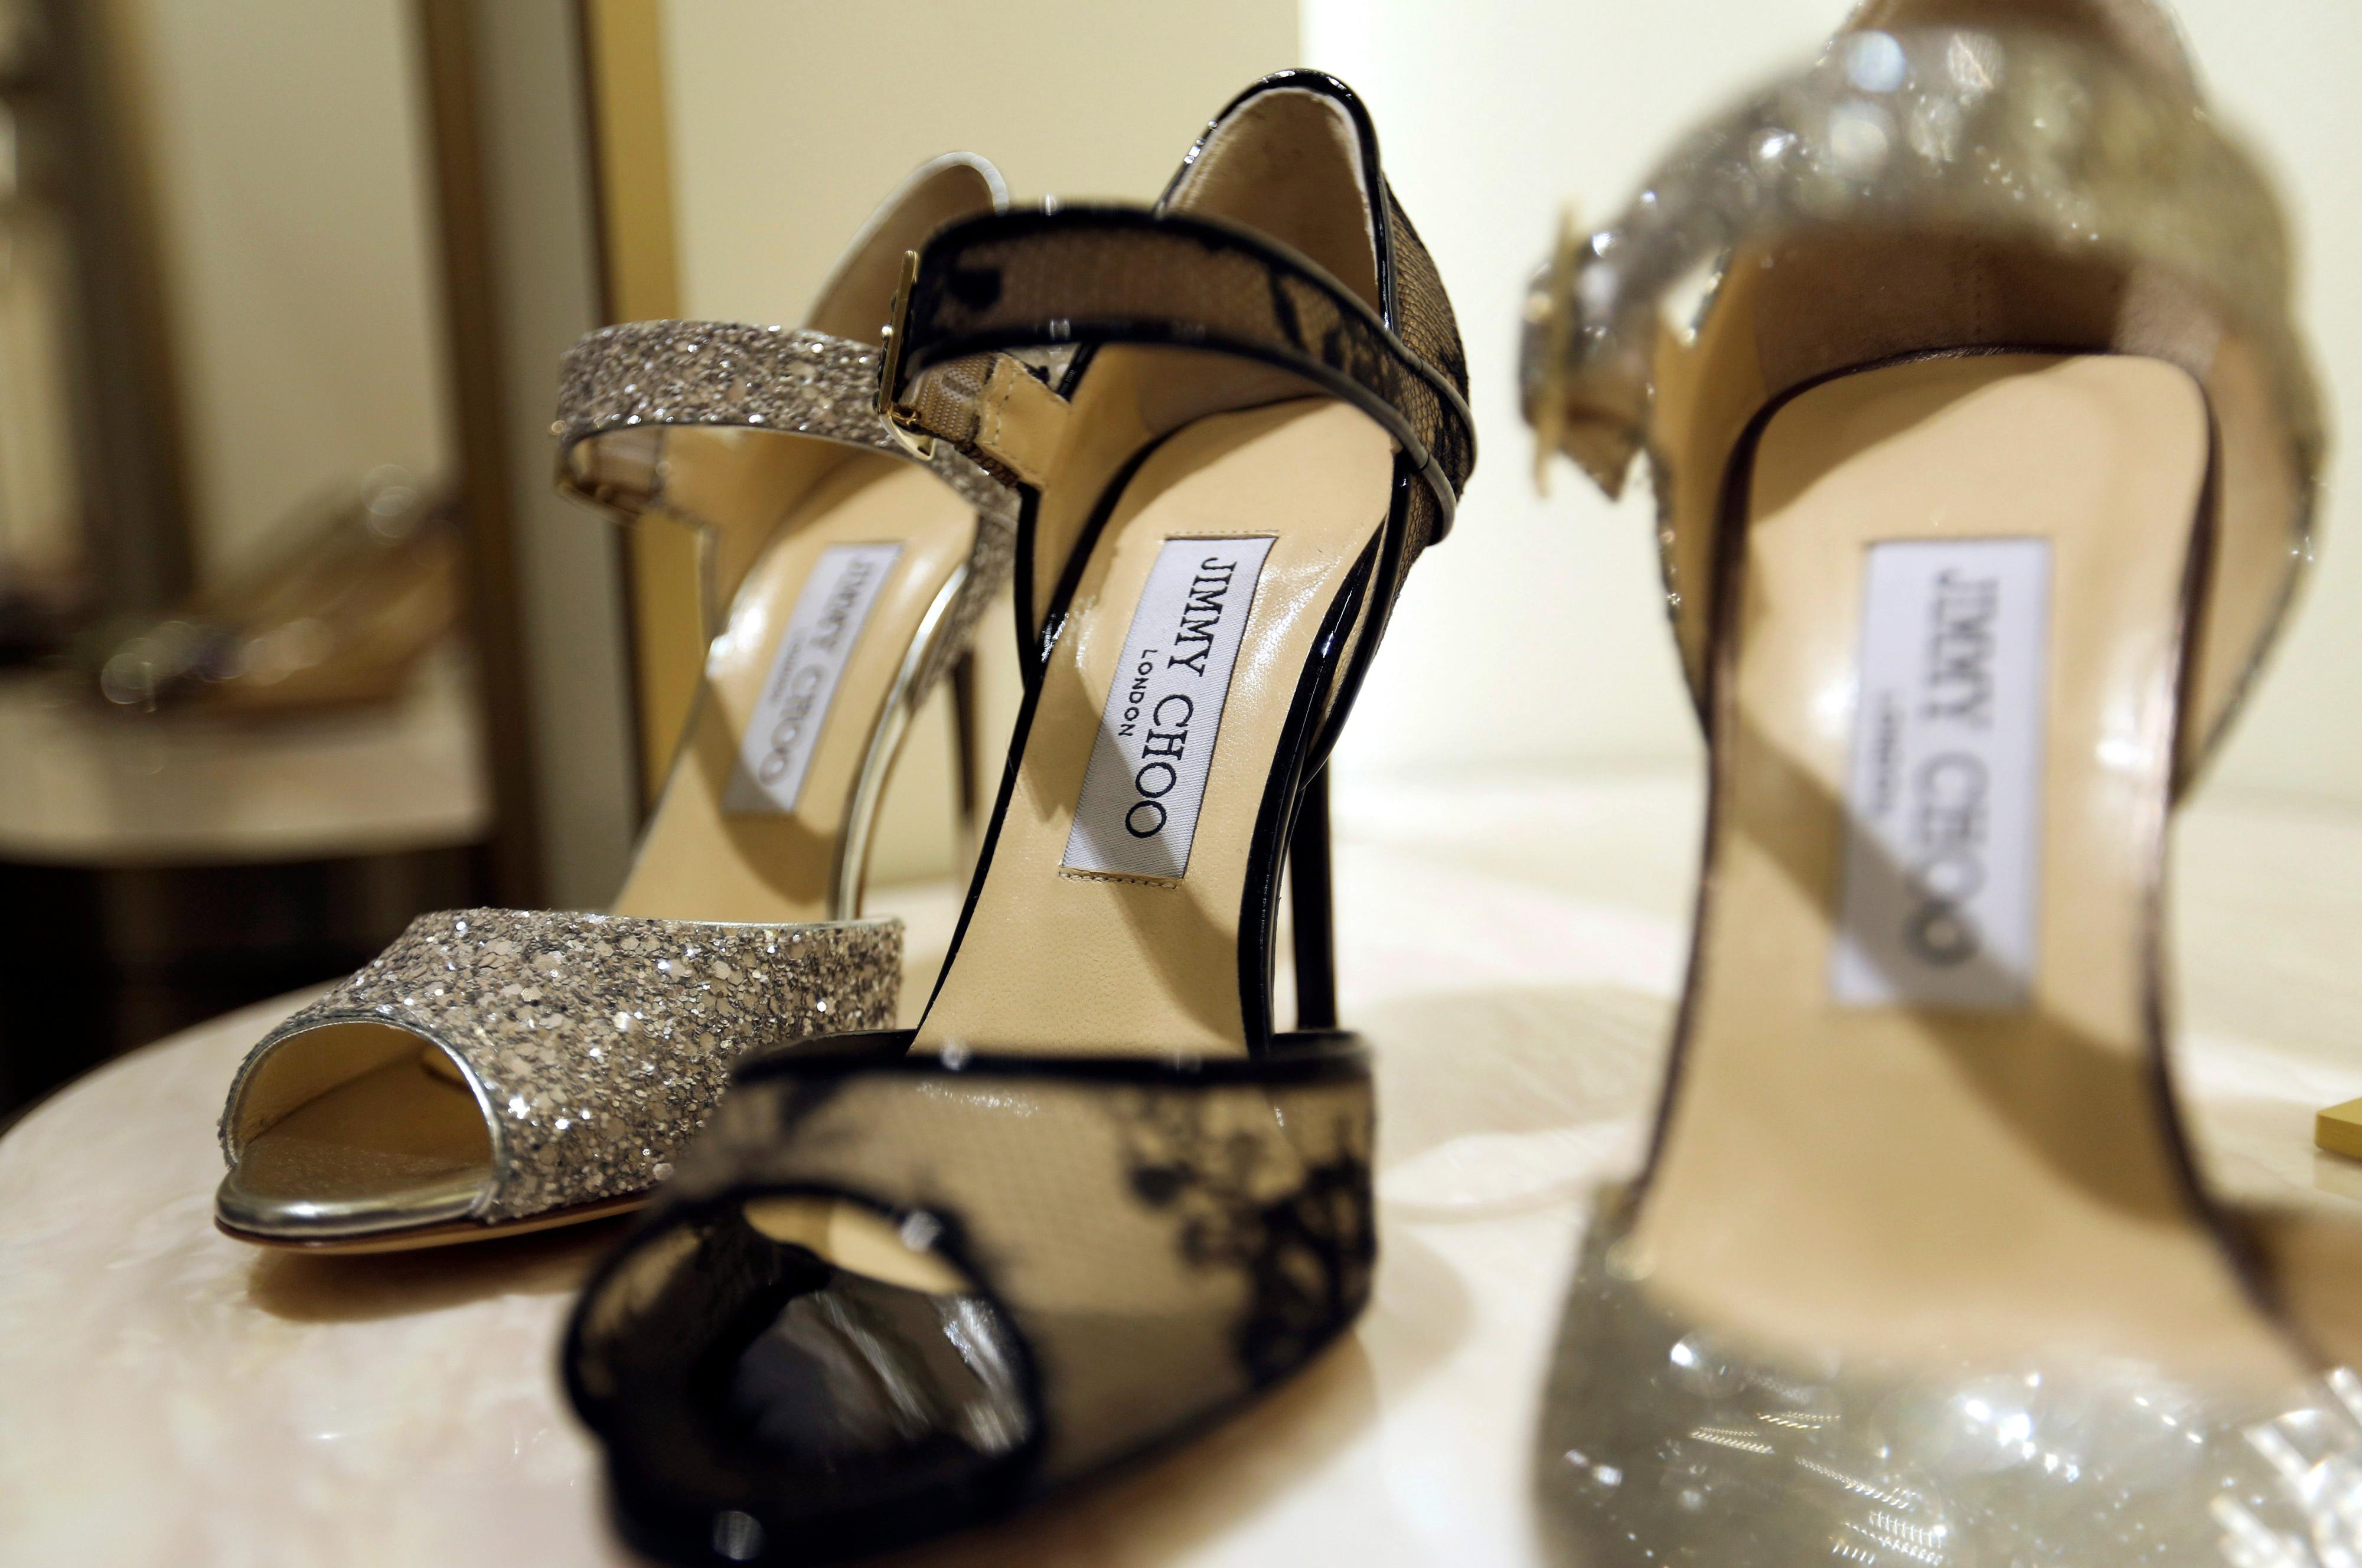 Jimmy Choo just put itself up for sale